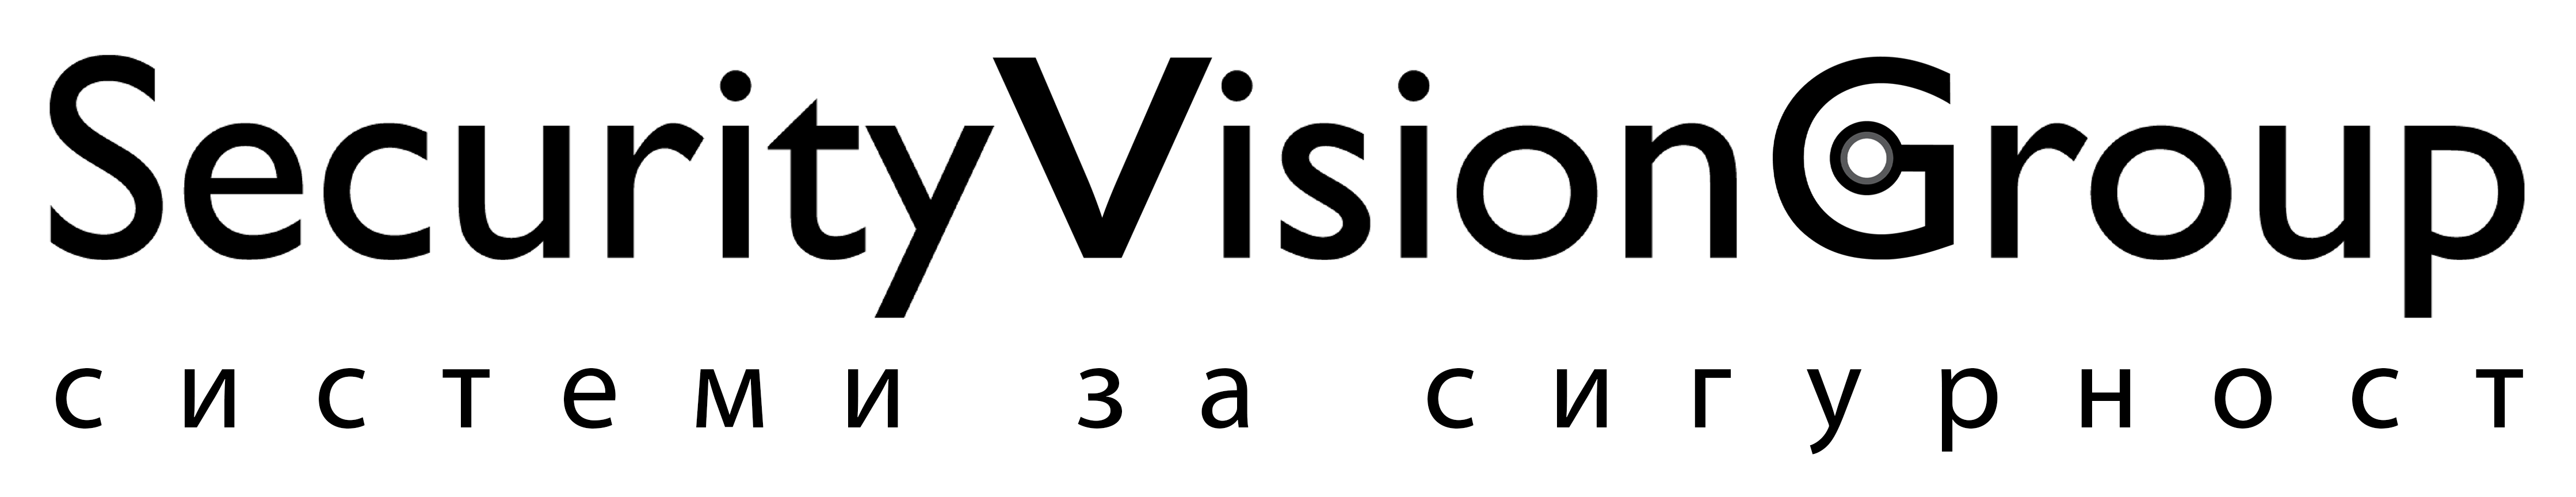 Security Vision Group